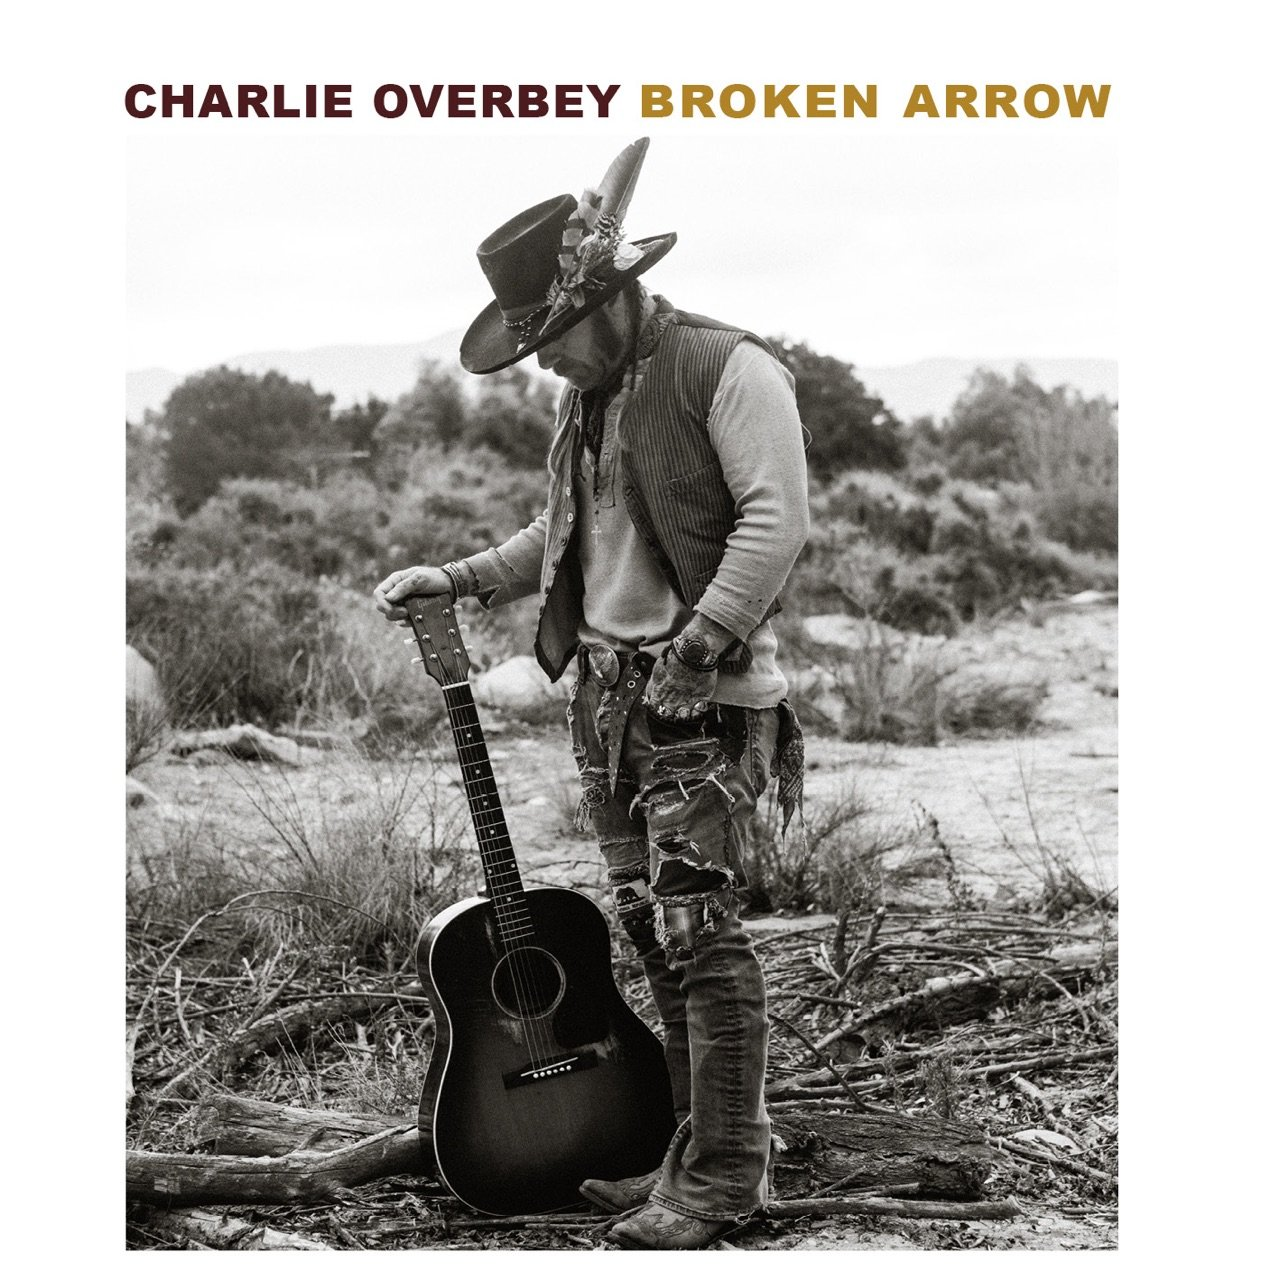 Charlie Overbey